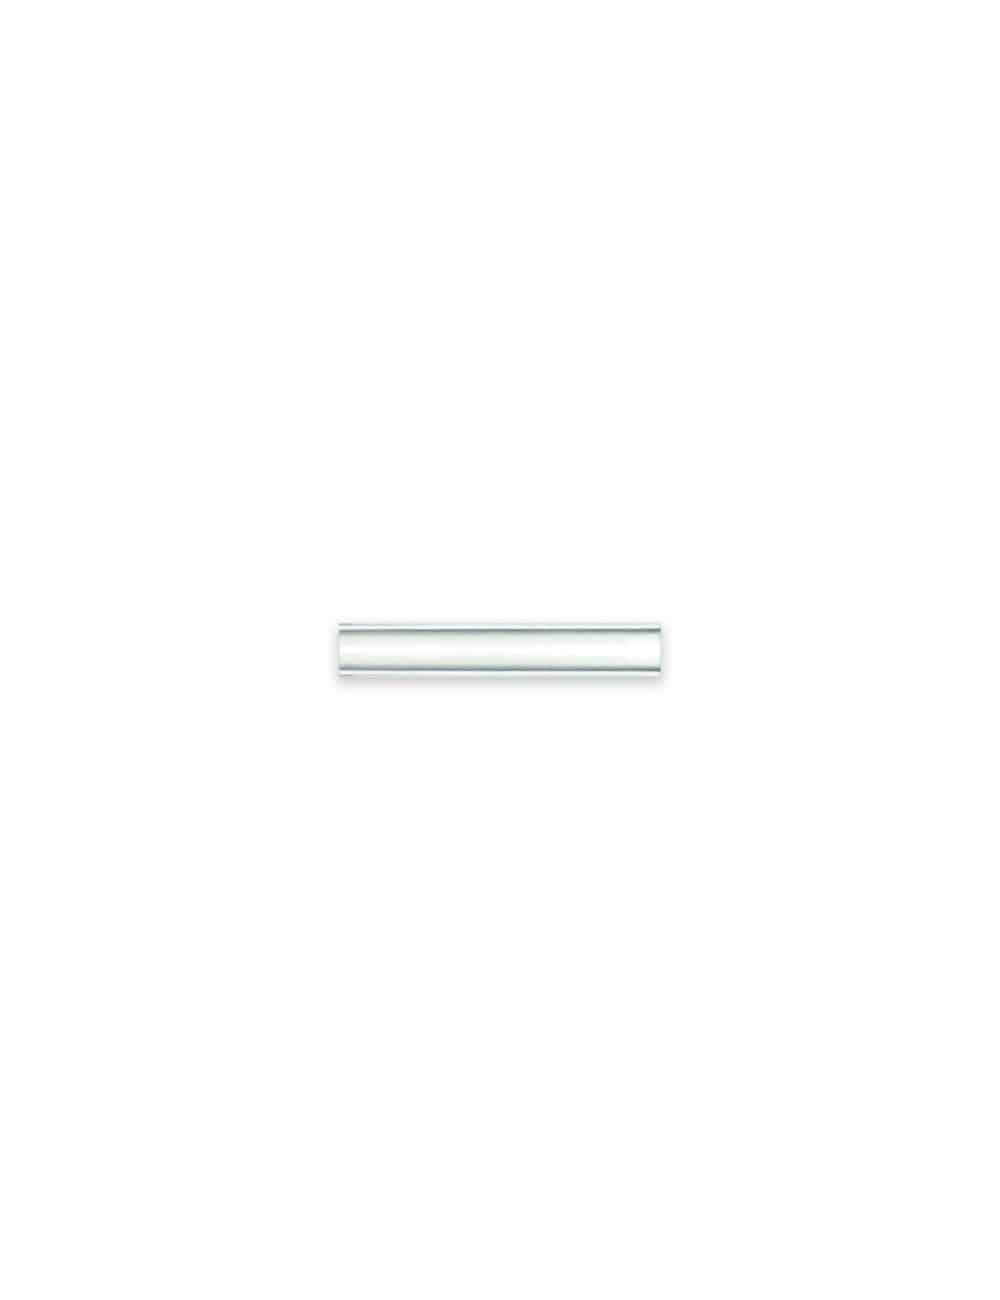 Classic Chrome with Brushed Silver Border Tie Clip T101FC-034